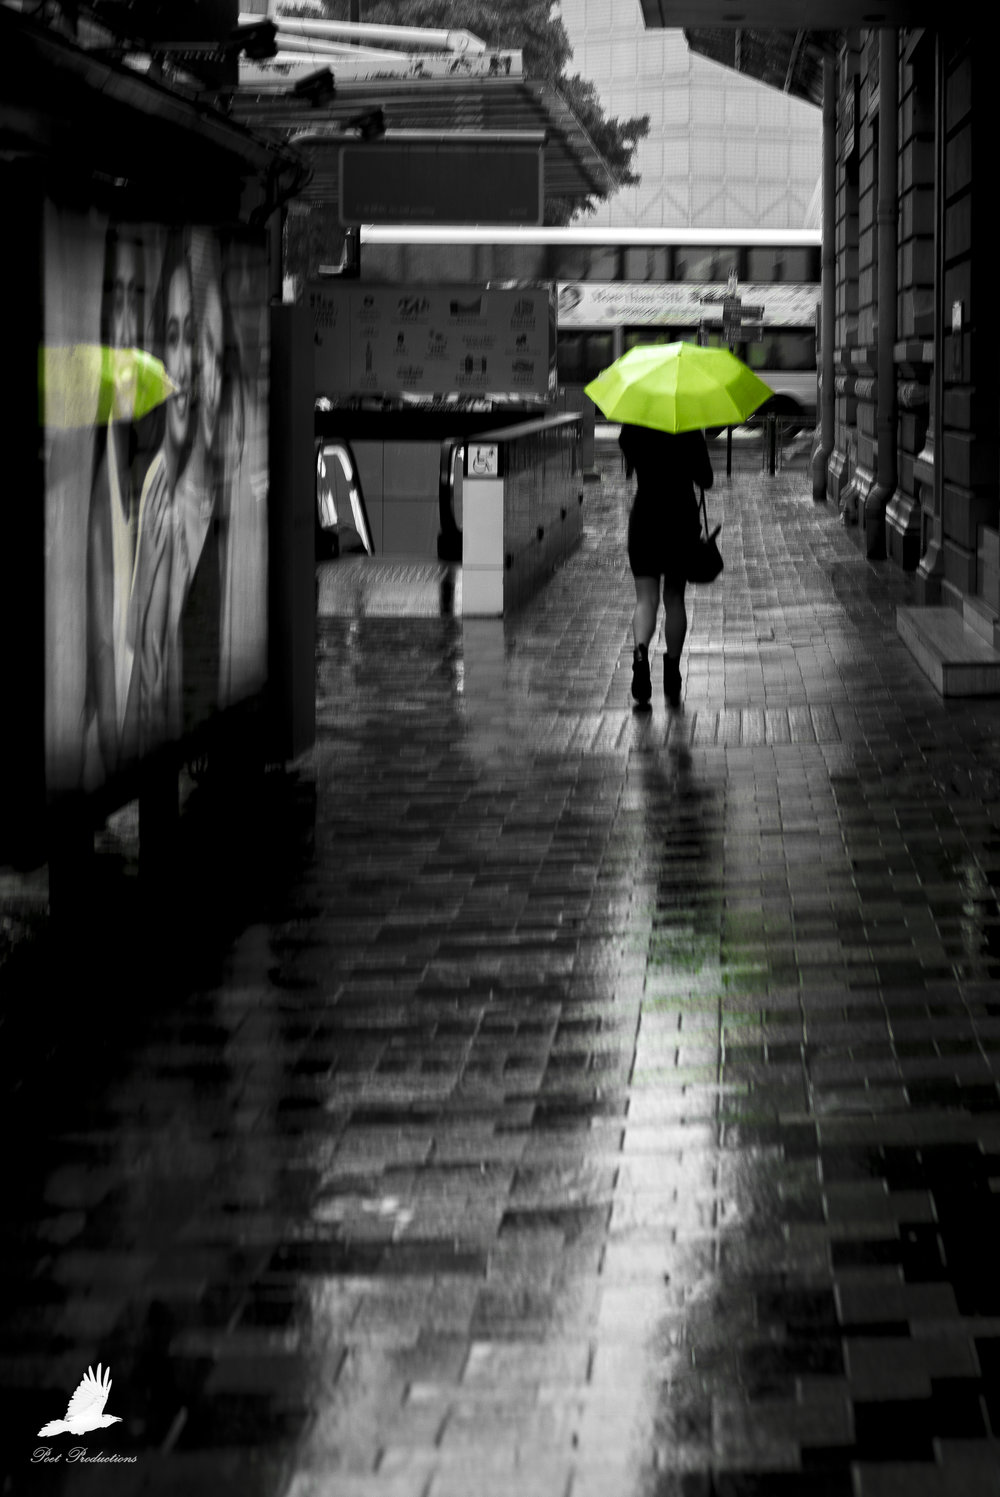 Woman with a lime green umbrella in Hong Kong